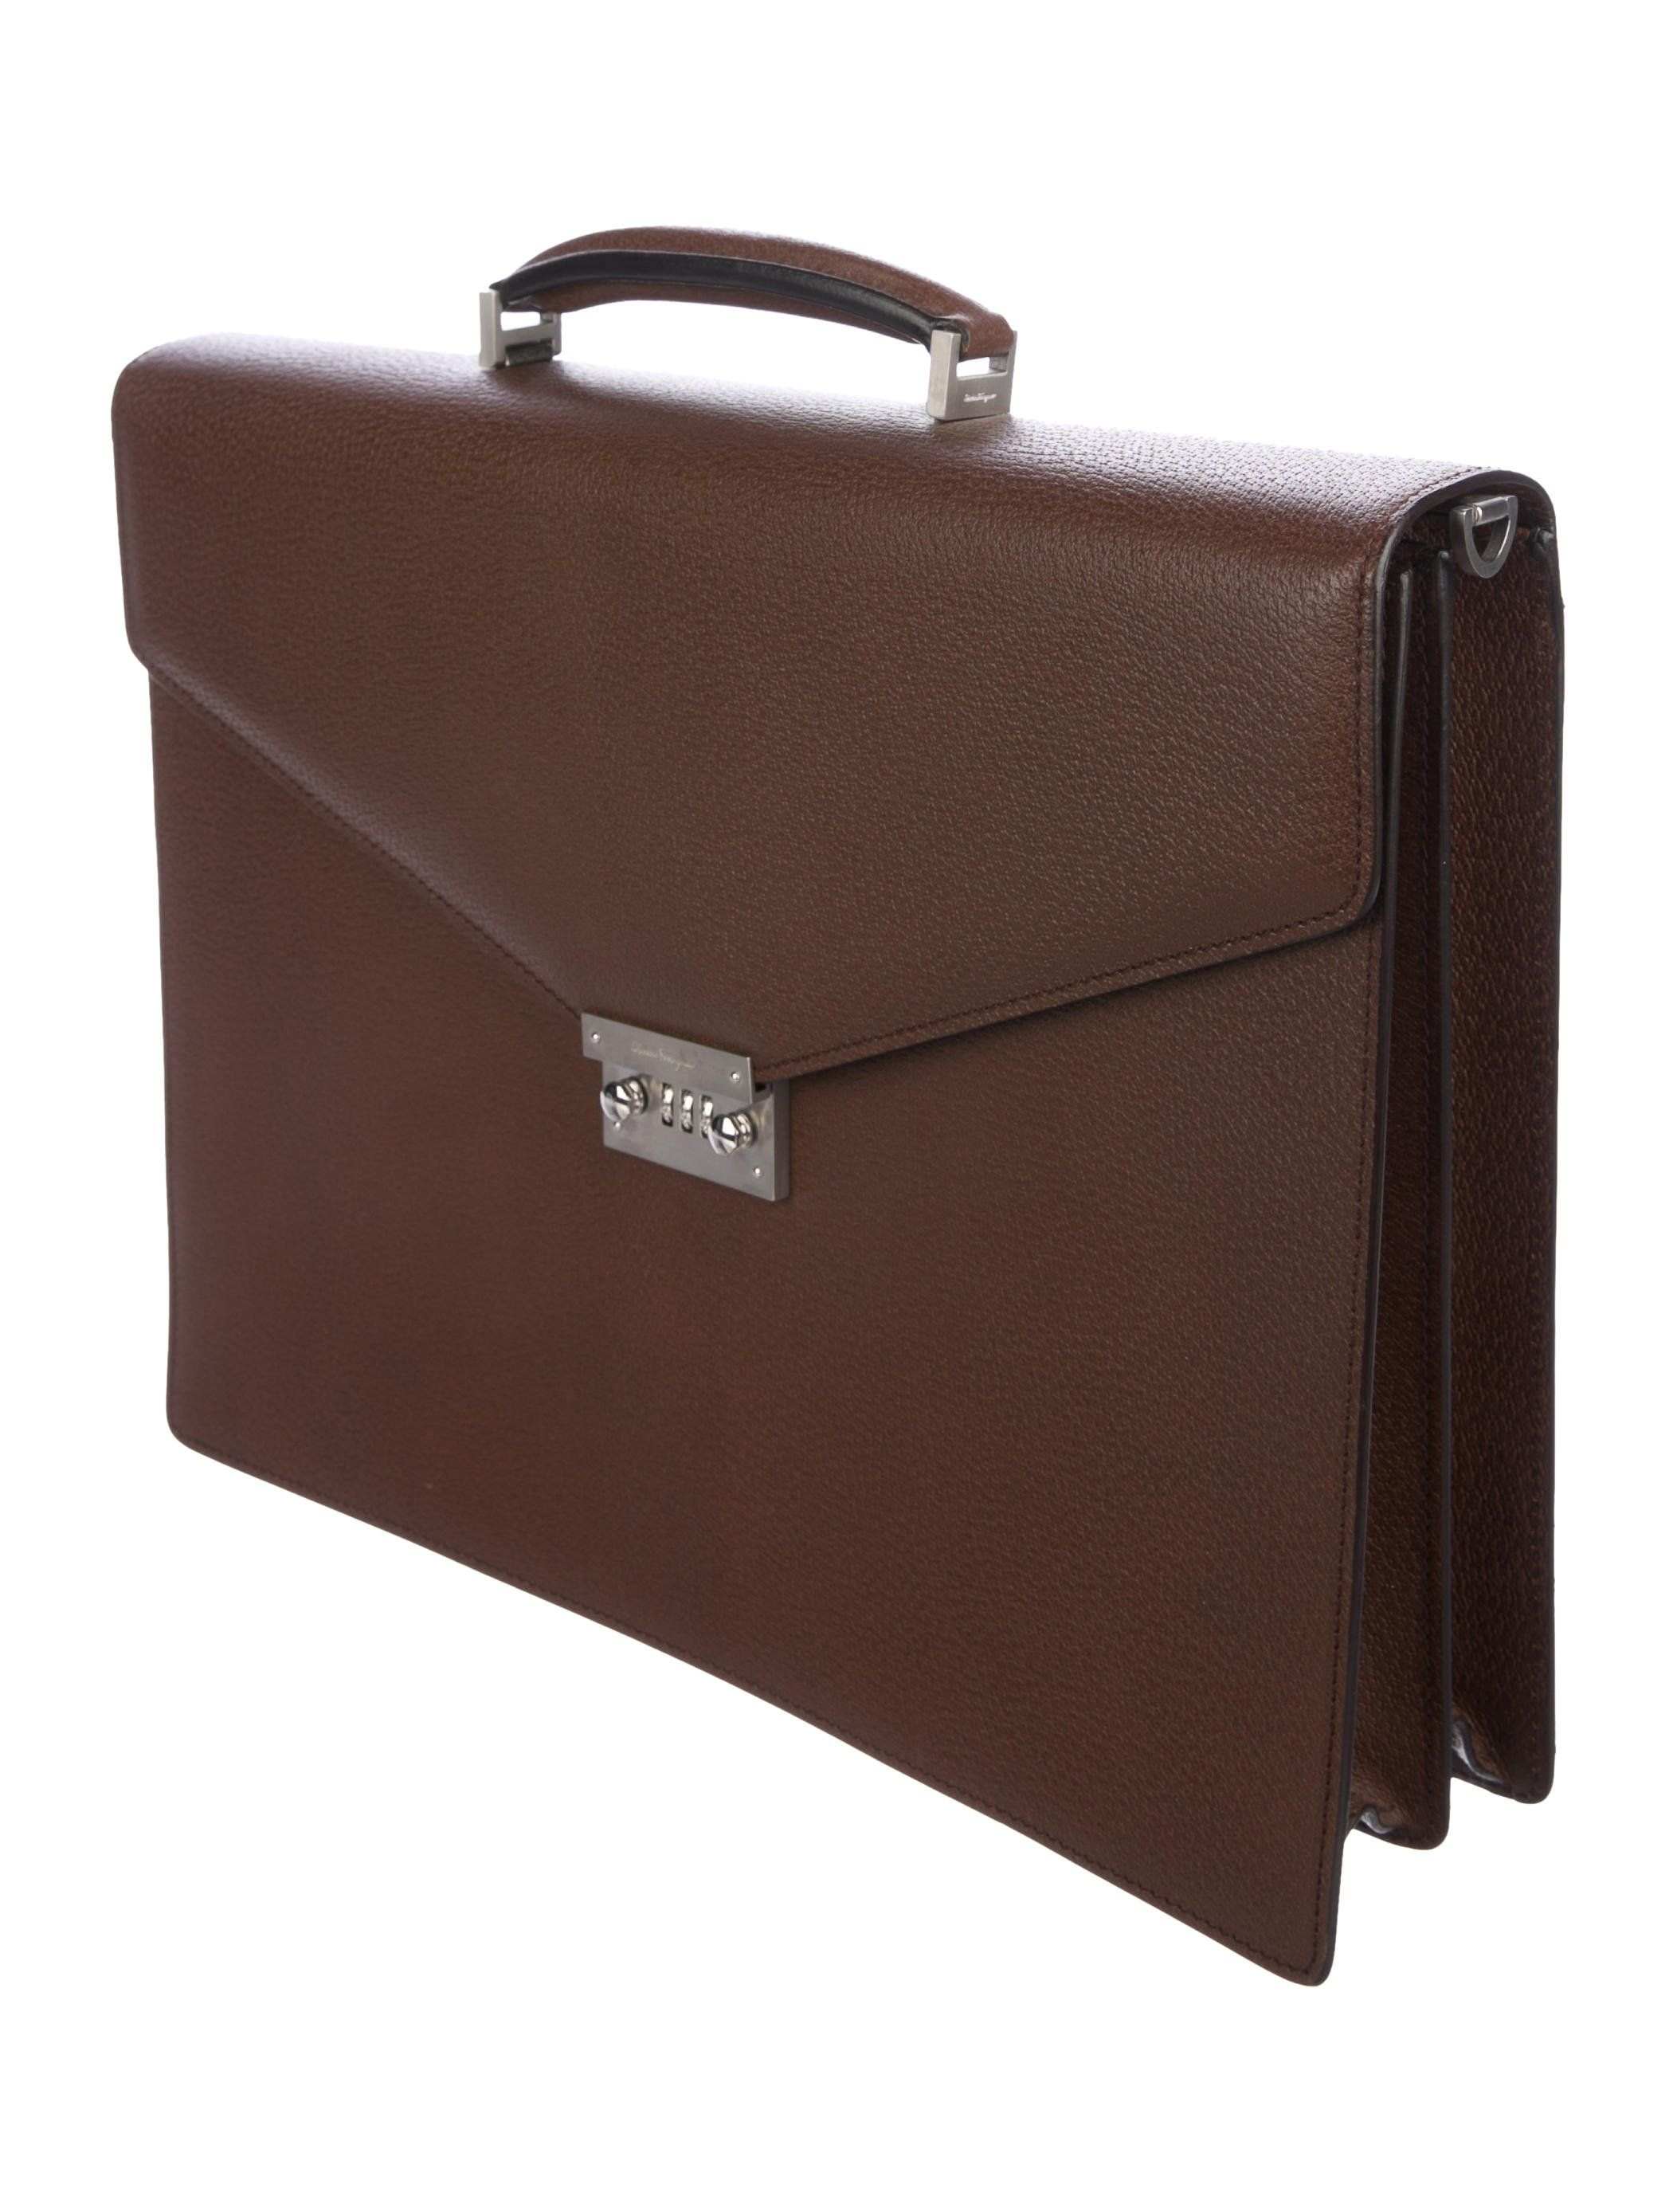 eba3c371806a Men's brown textured leather Salvatore Ferragamo briefcase with brushed  silver-tone hardware, single flat top handle, single detachable flat  shoulder strap ...